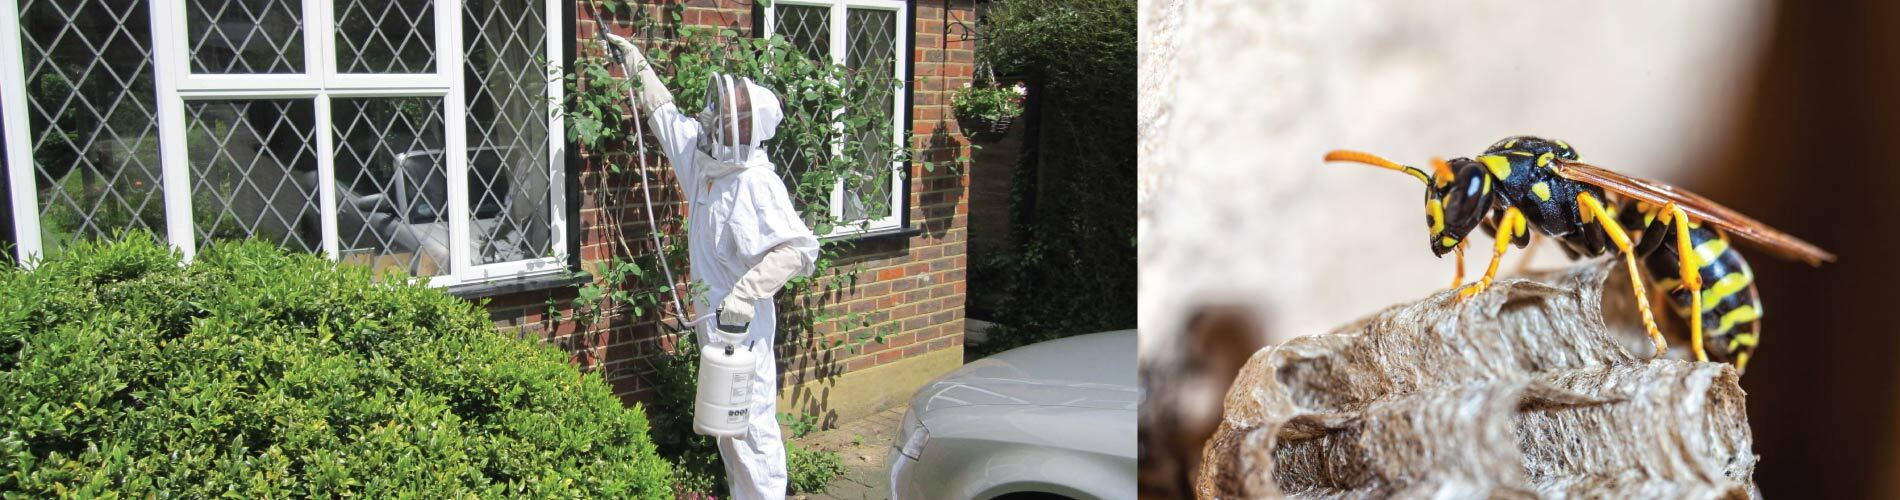 wasp removal windsor